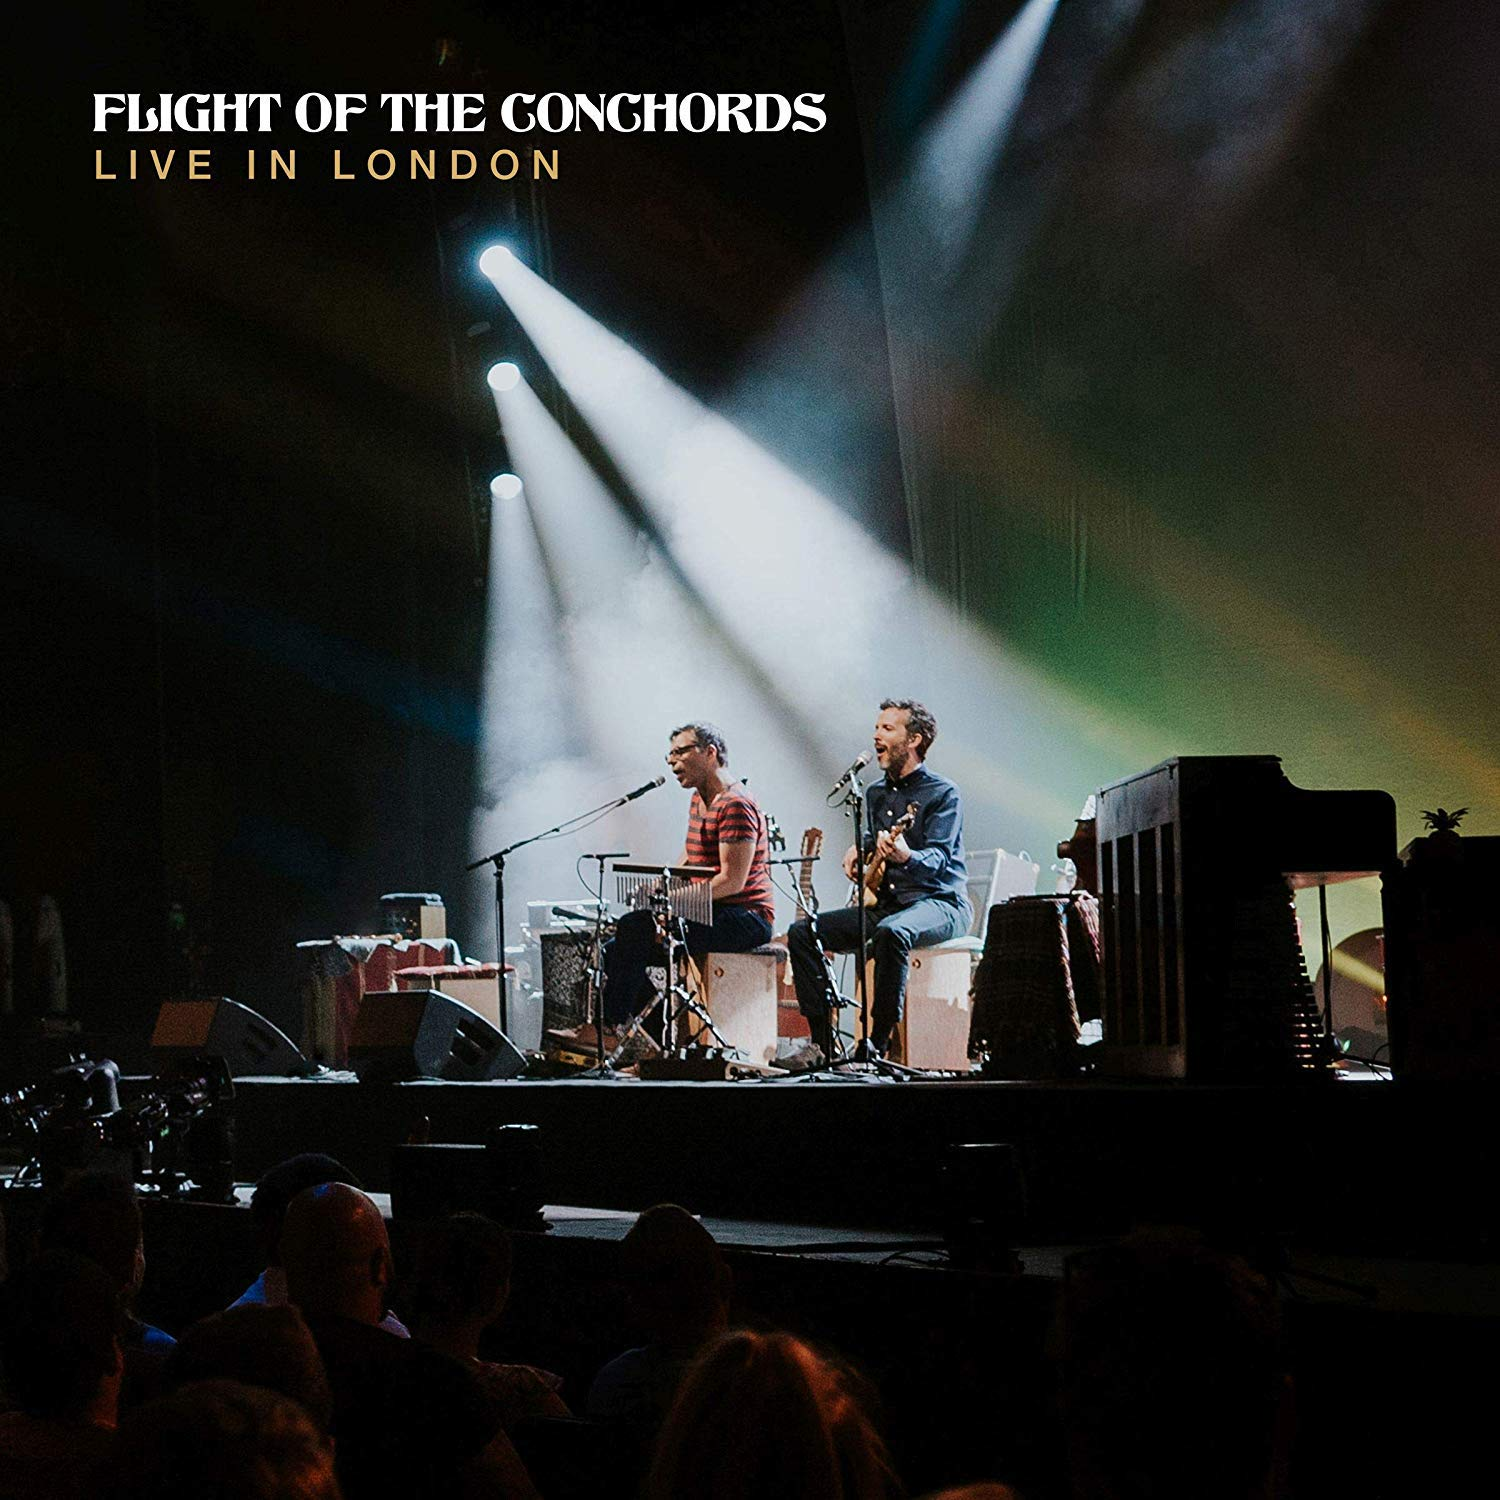 Cassette : Flight of the Conchords - Live In London (Cassette)